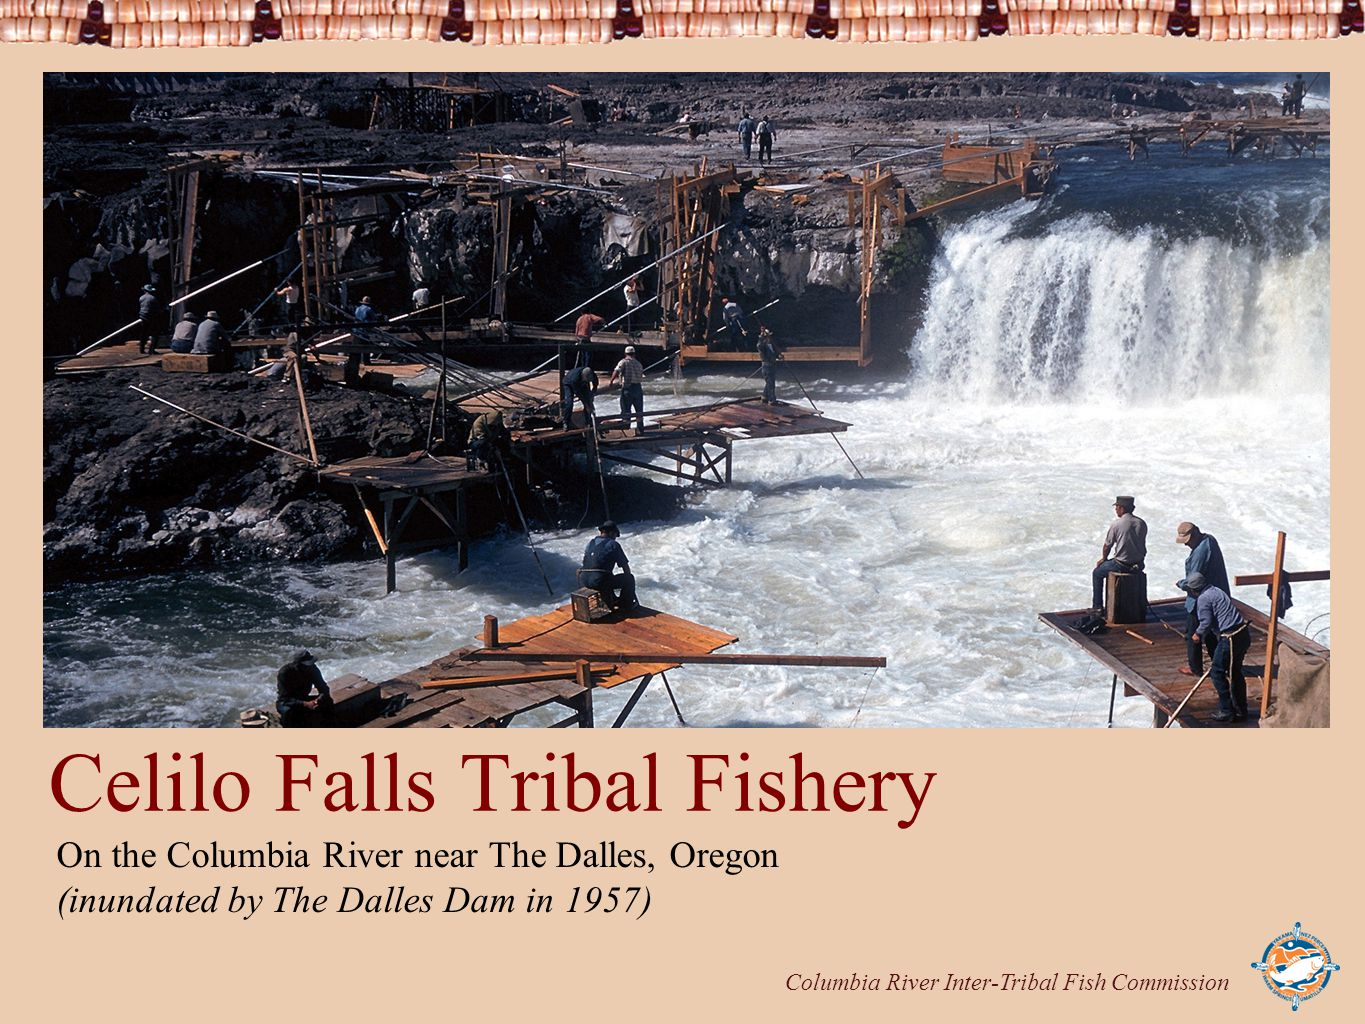 Columbia River Inter-Tribal Fish Commission Celilo Falls Tribal Fishery On the Columbia River near The Dalles, Oregon (inundated by The Dalles Dam in